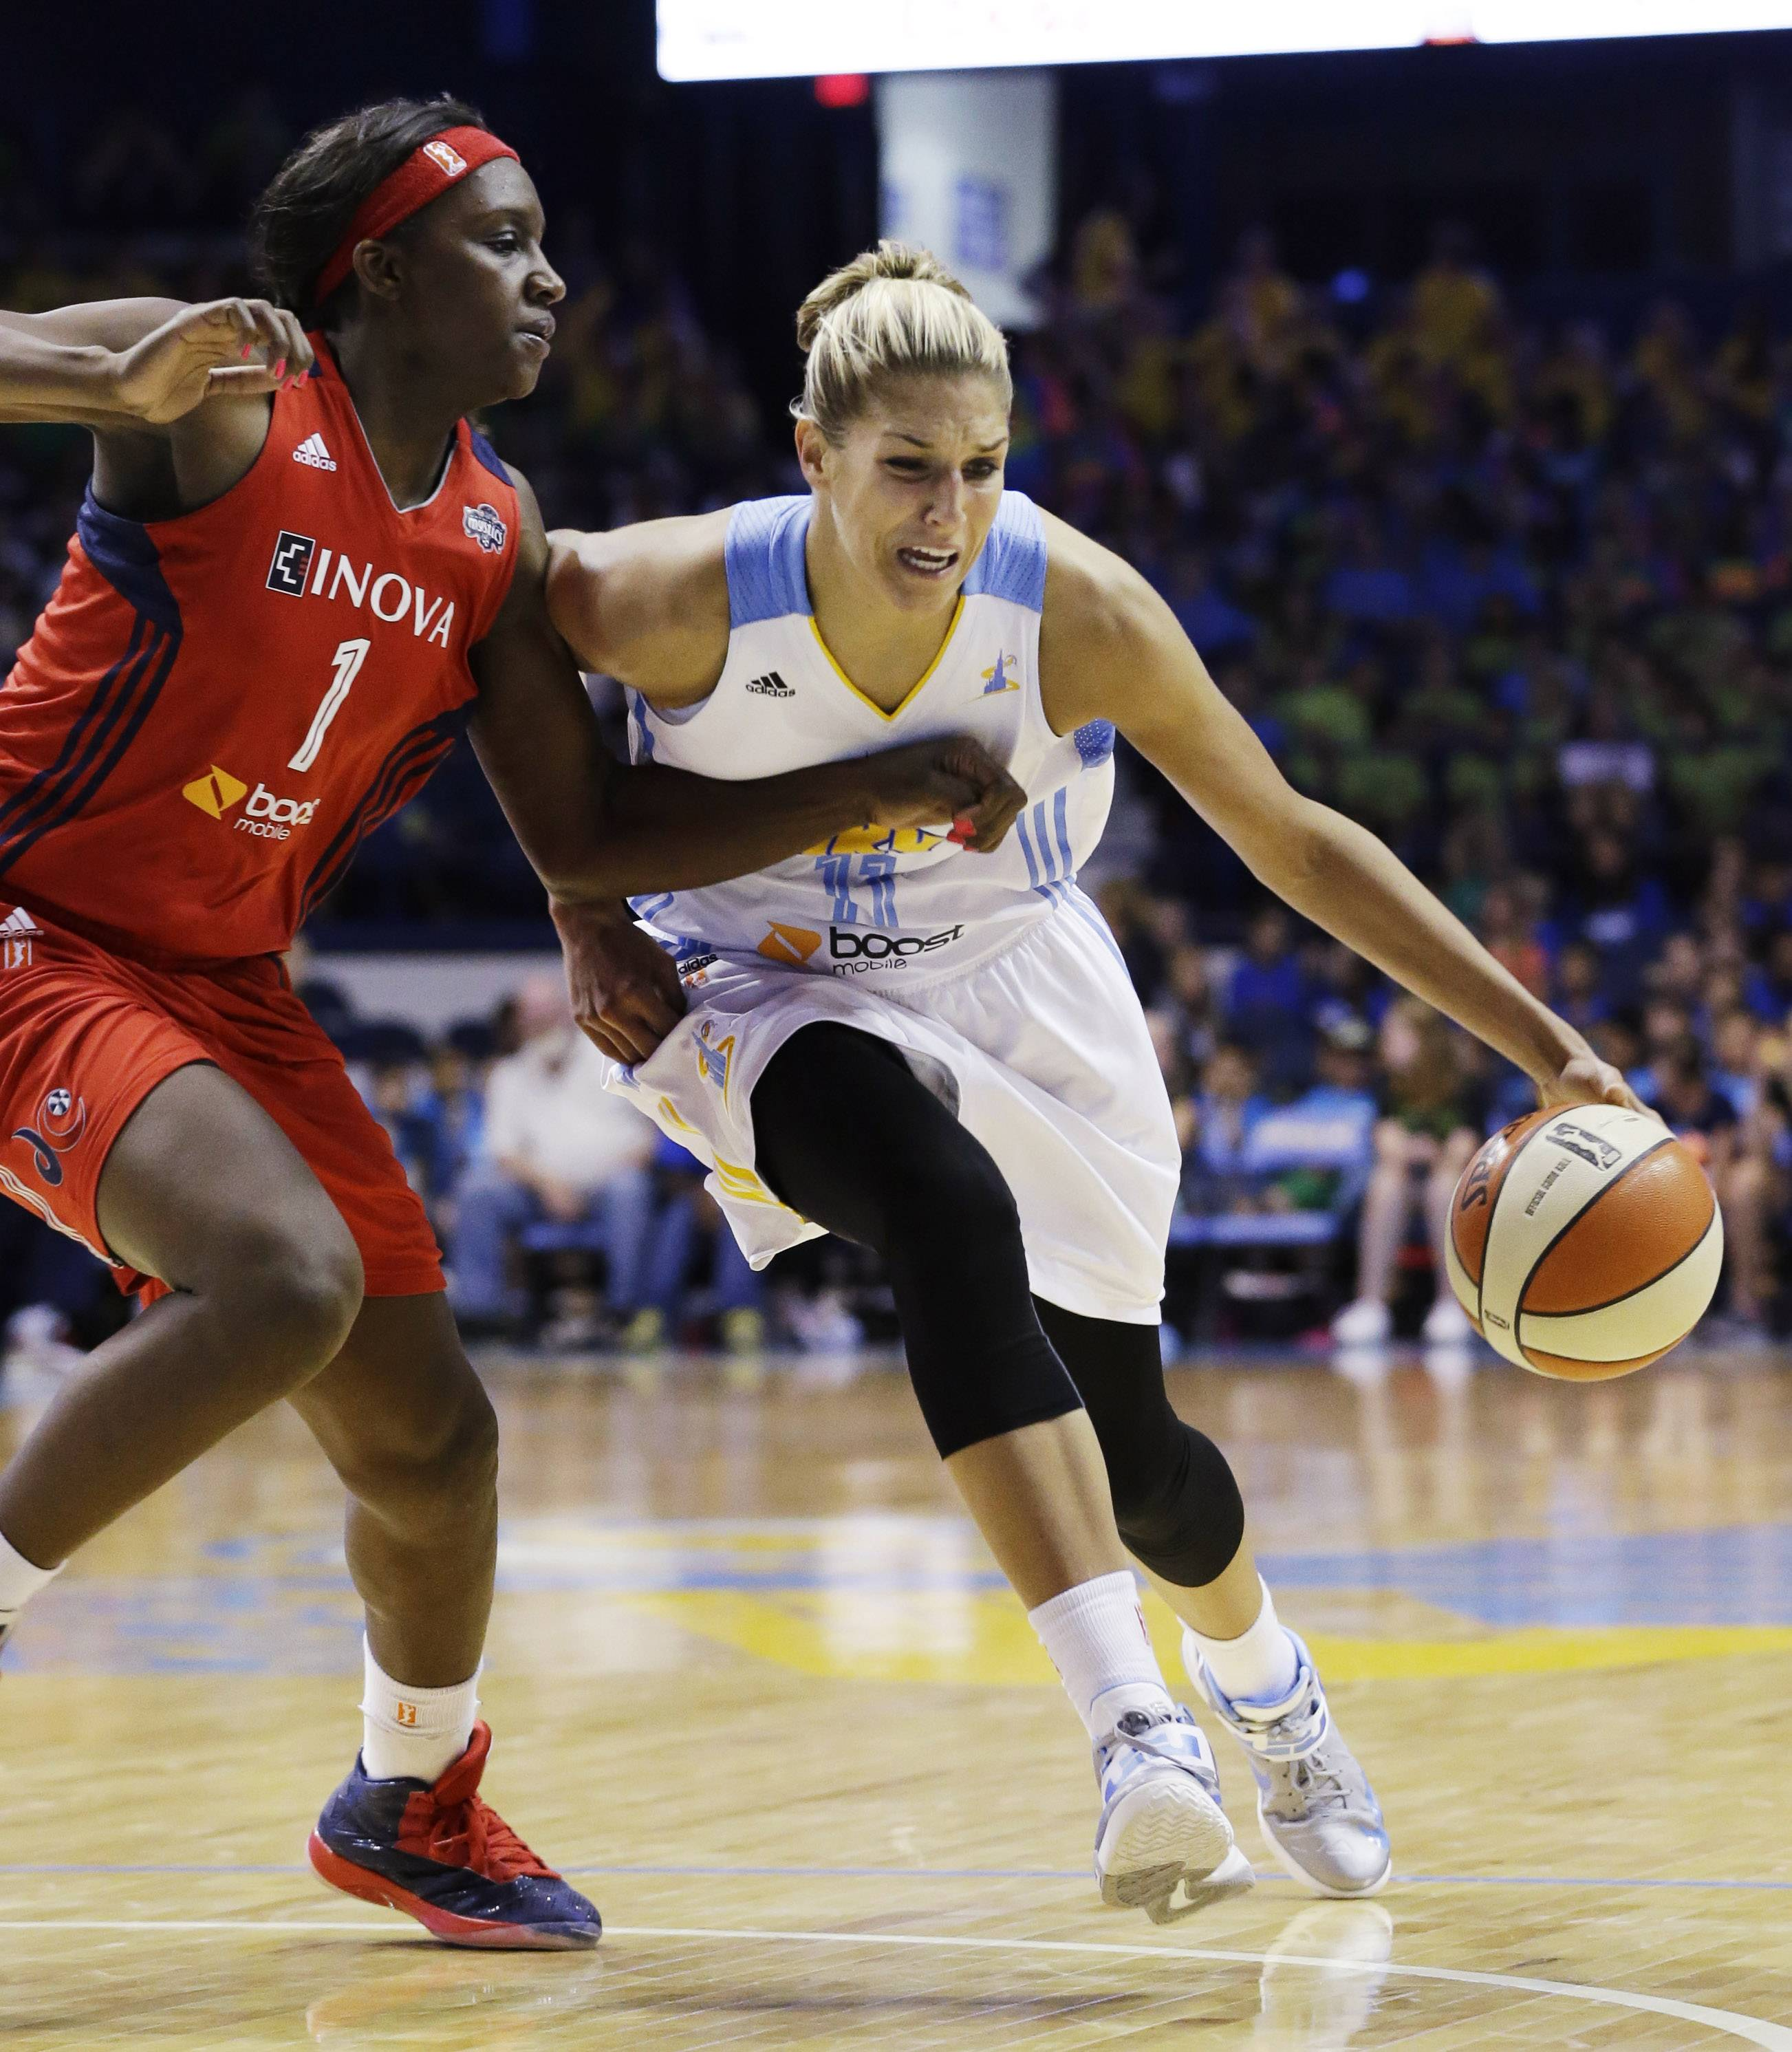 Chicago Sky forward Elena Delle Donne, is averaging 23.0 points per game this season. She earned Eastern Conference player honors for May.